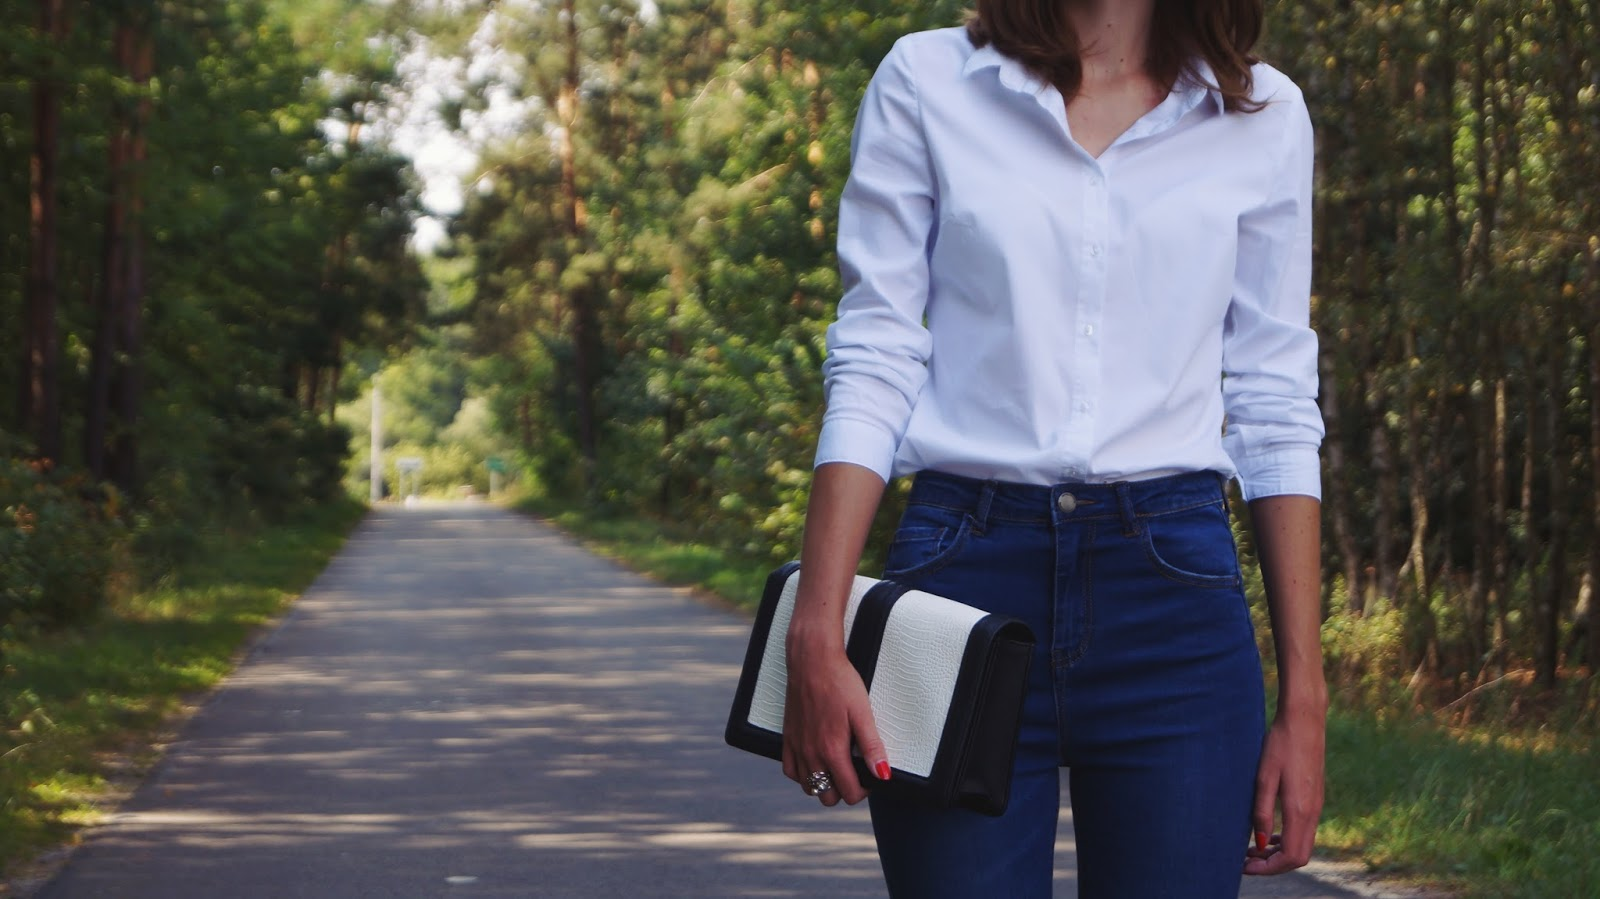 White shirt, red highheels and high waist jeans